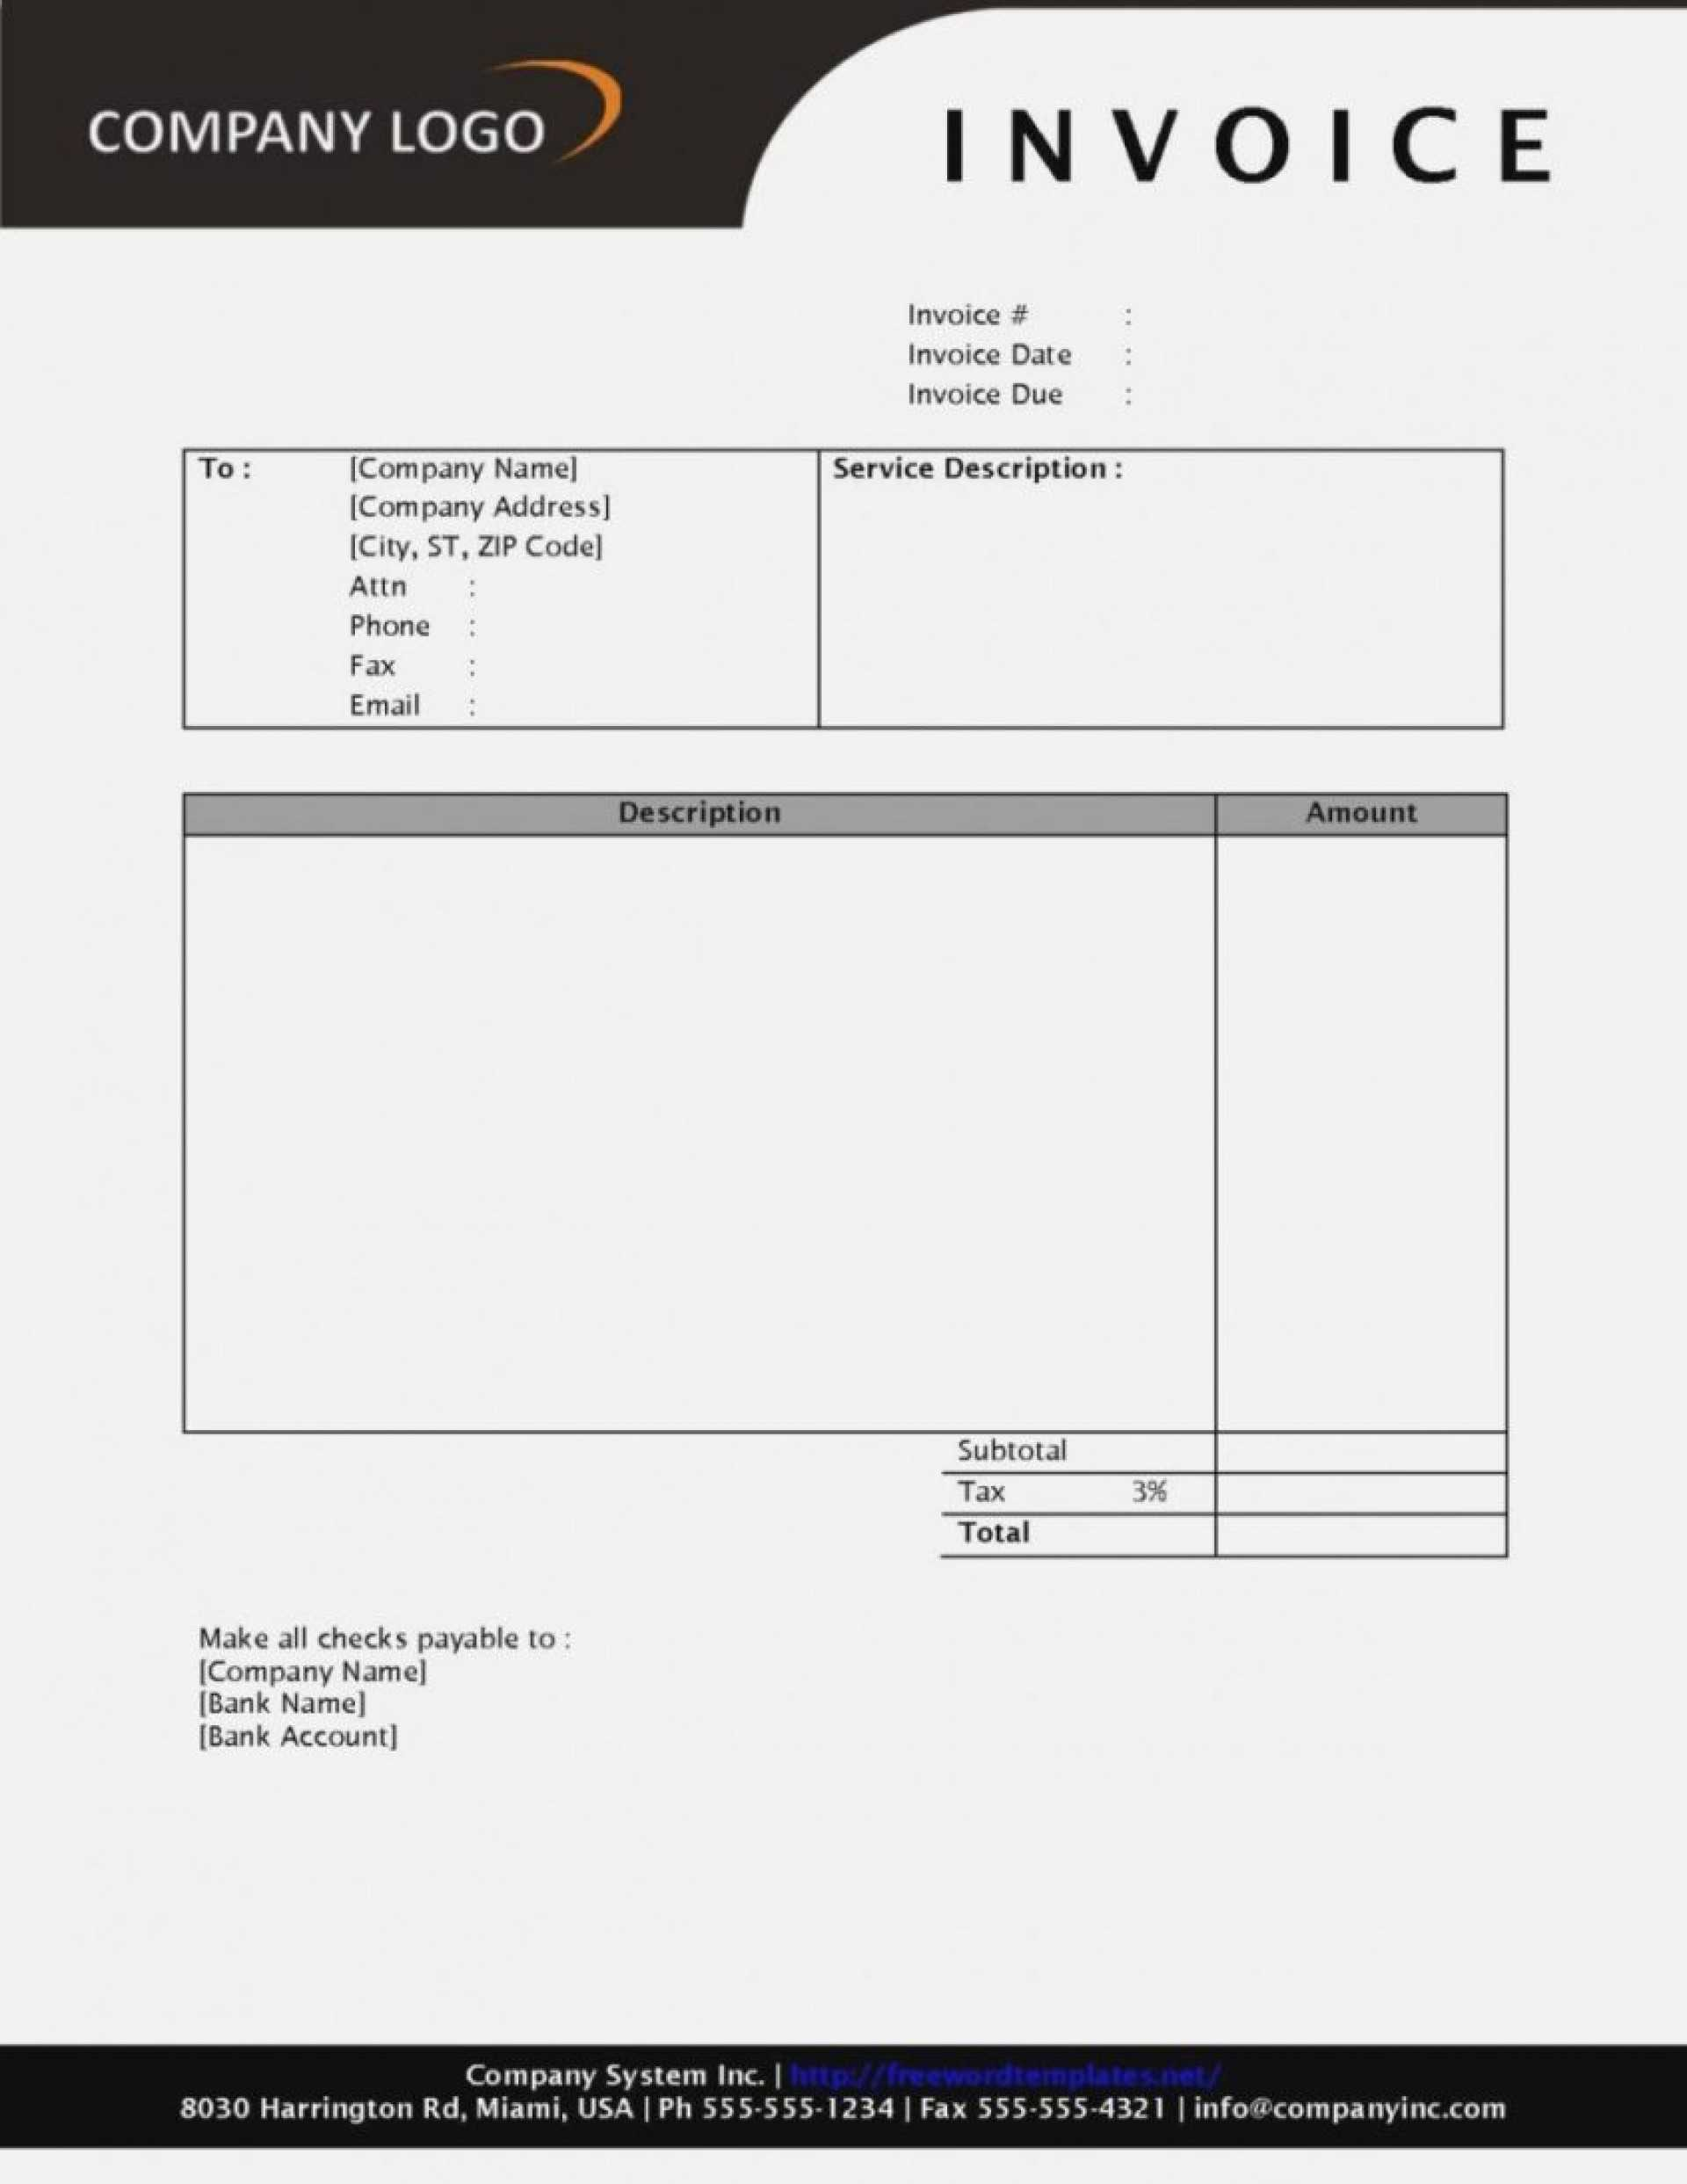 012 Invoice Template Word Free Unbelievable Ideas Proforma Intended For Free Printable Invoice Template Microsoft Word